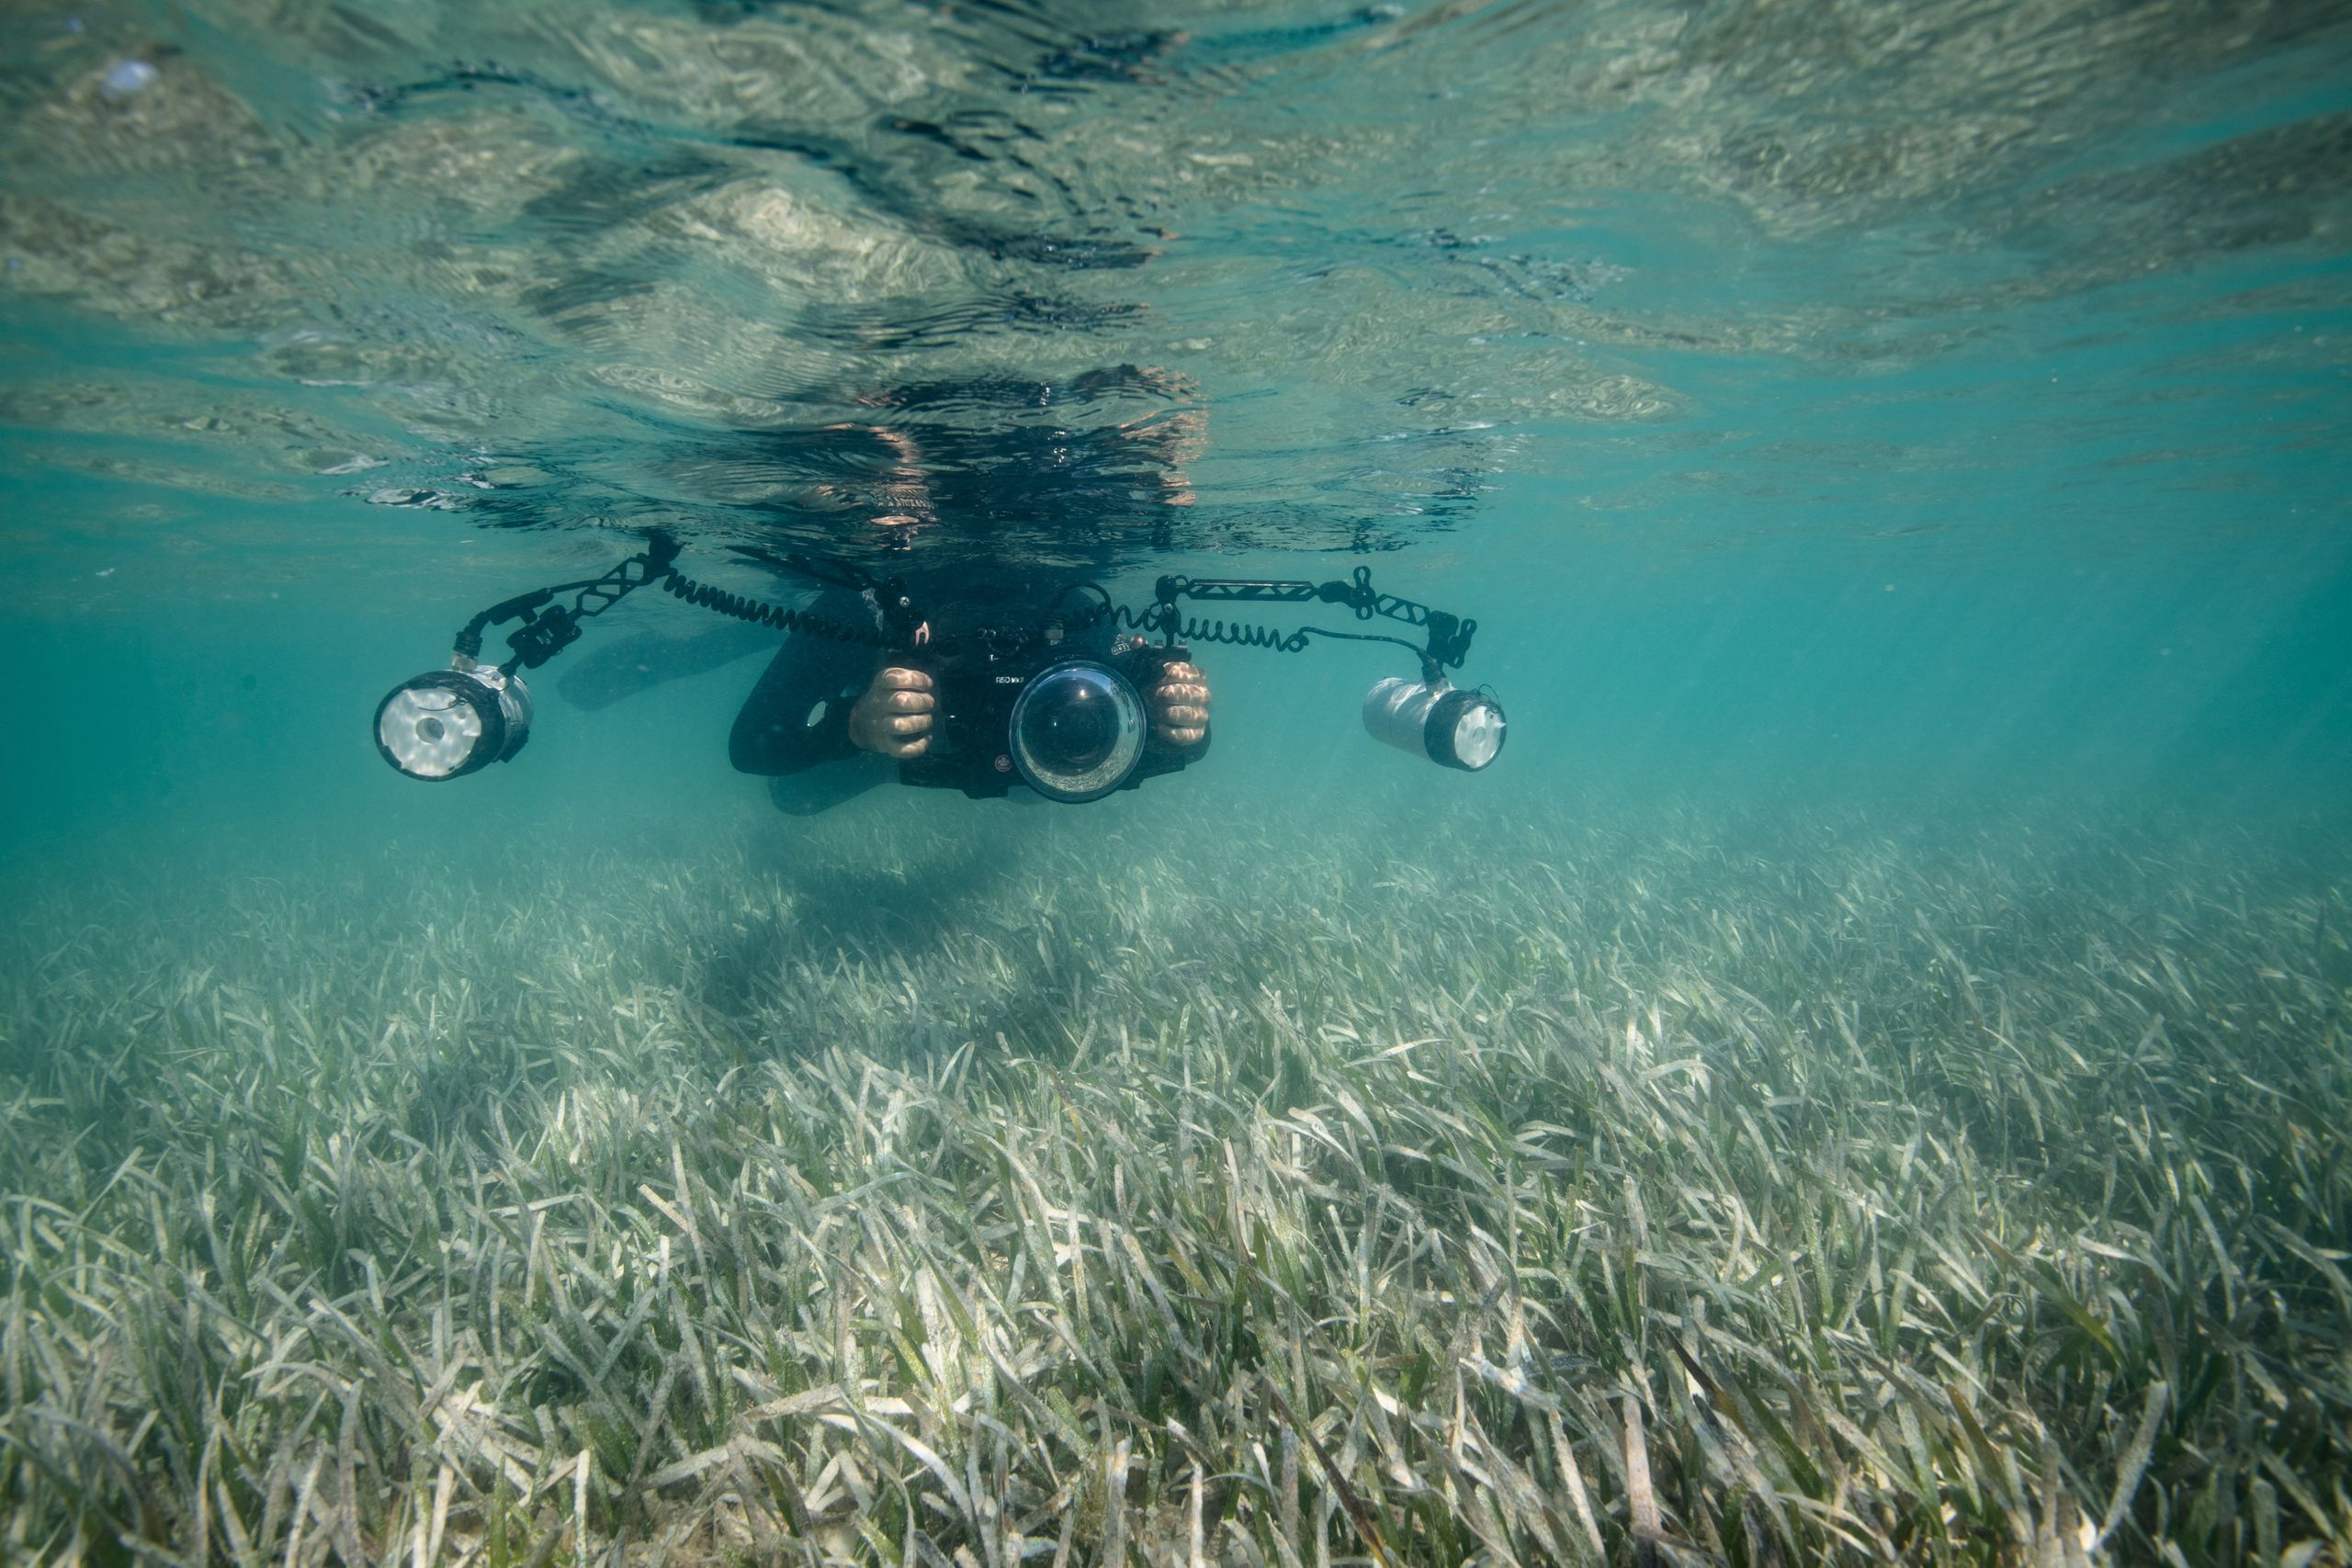 Ian Segebarth photographs a seagrass meadow composed of turtle grass in the Lignumvitae Key Aquatic Preserve.